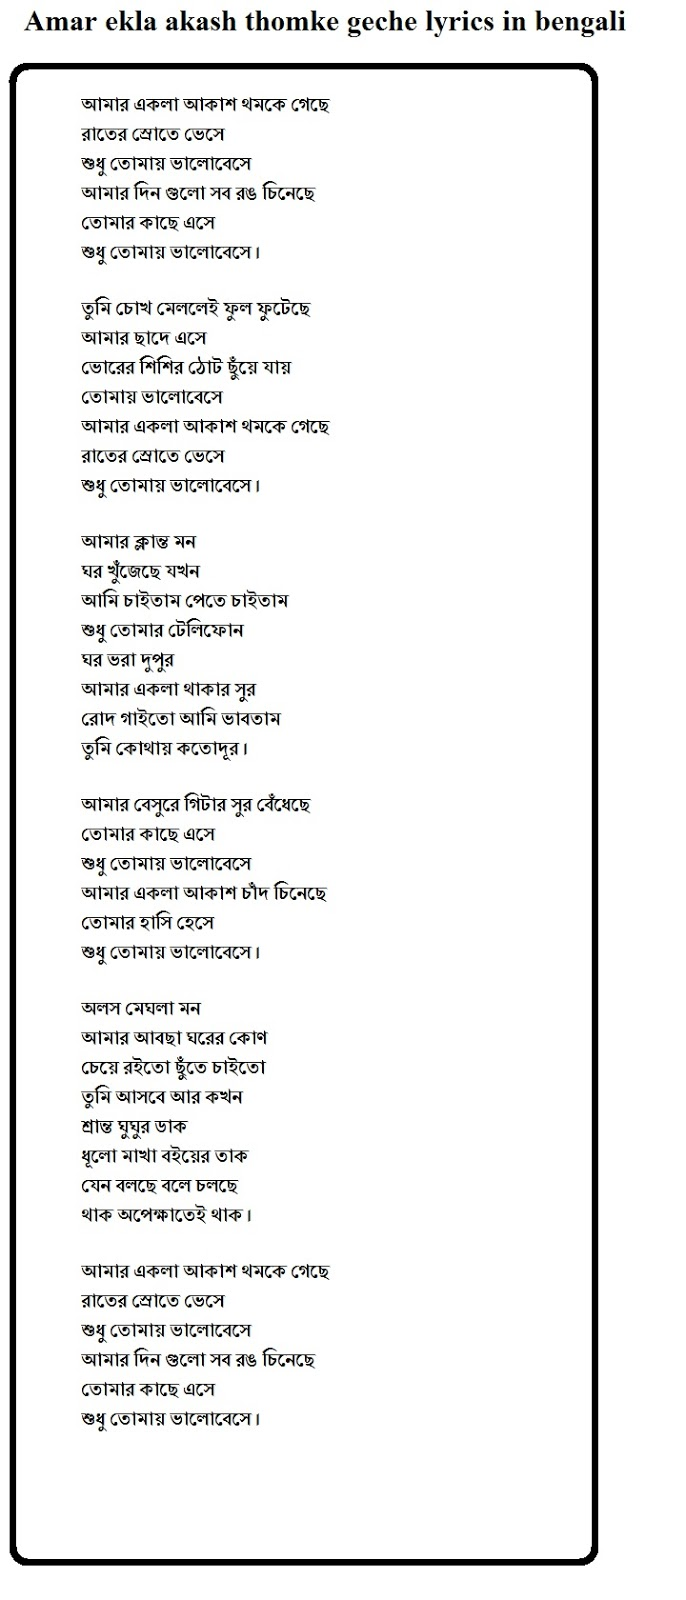 Amar ekla akash thomke geche lyrics in bengali